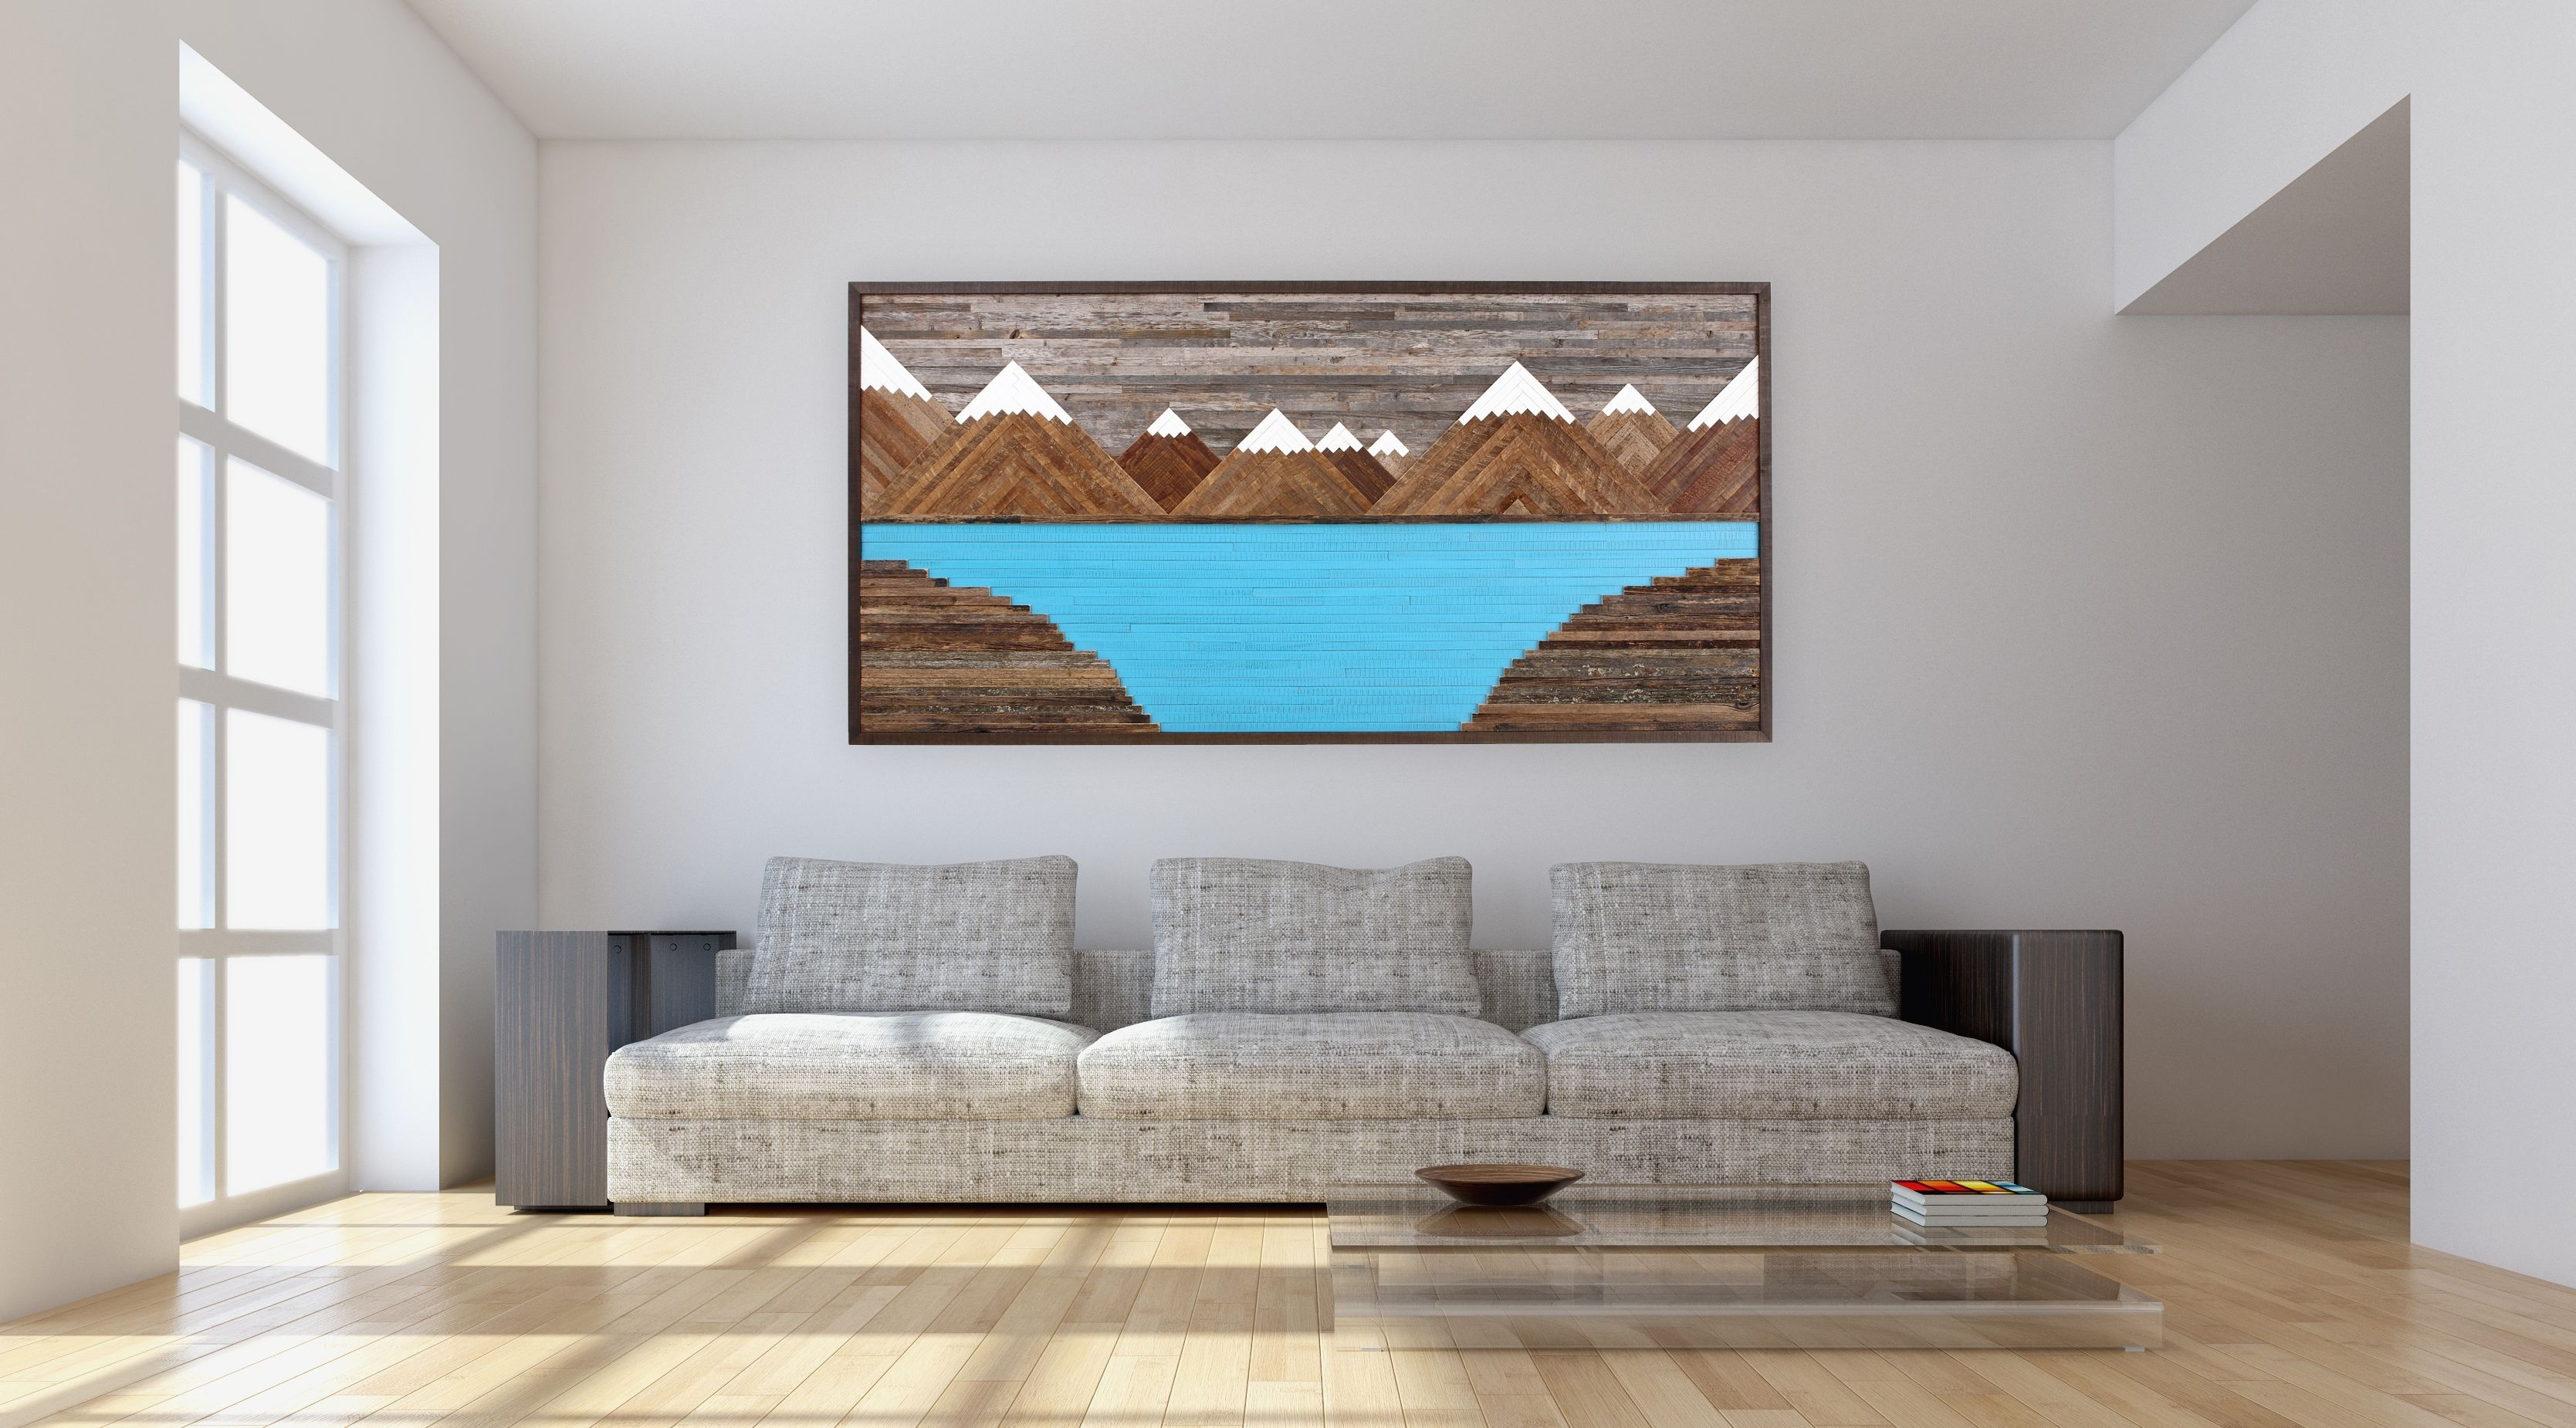 Handmade Glacier Mountain Landscape, Wood Wall Art, Reclaimed Wood With Most Recently Released Rustic Wall Art (Gallery 12 of 15)